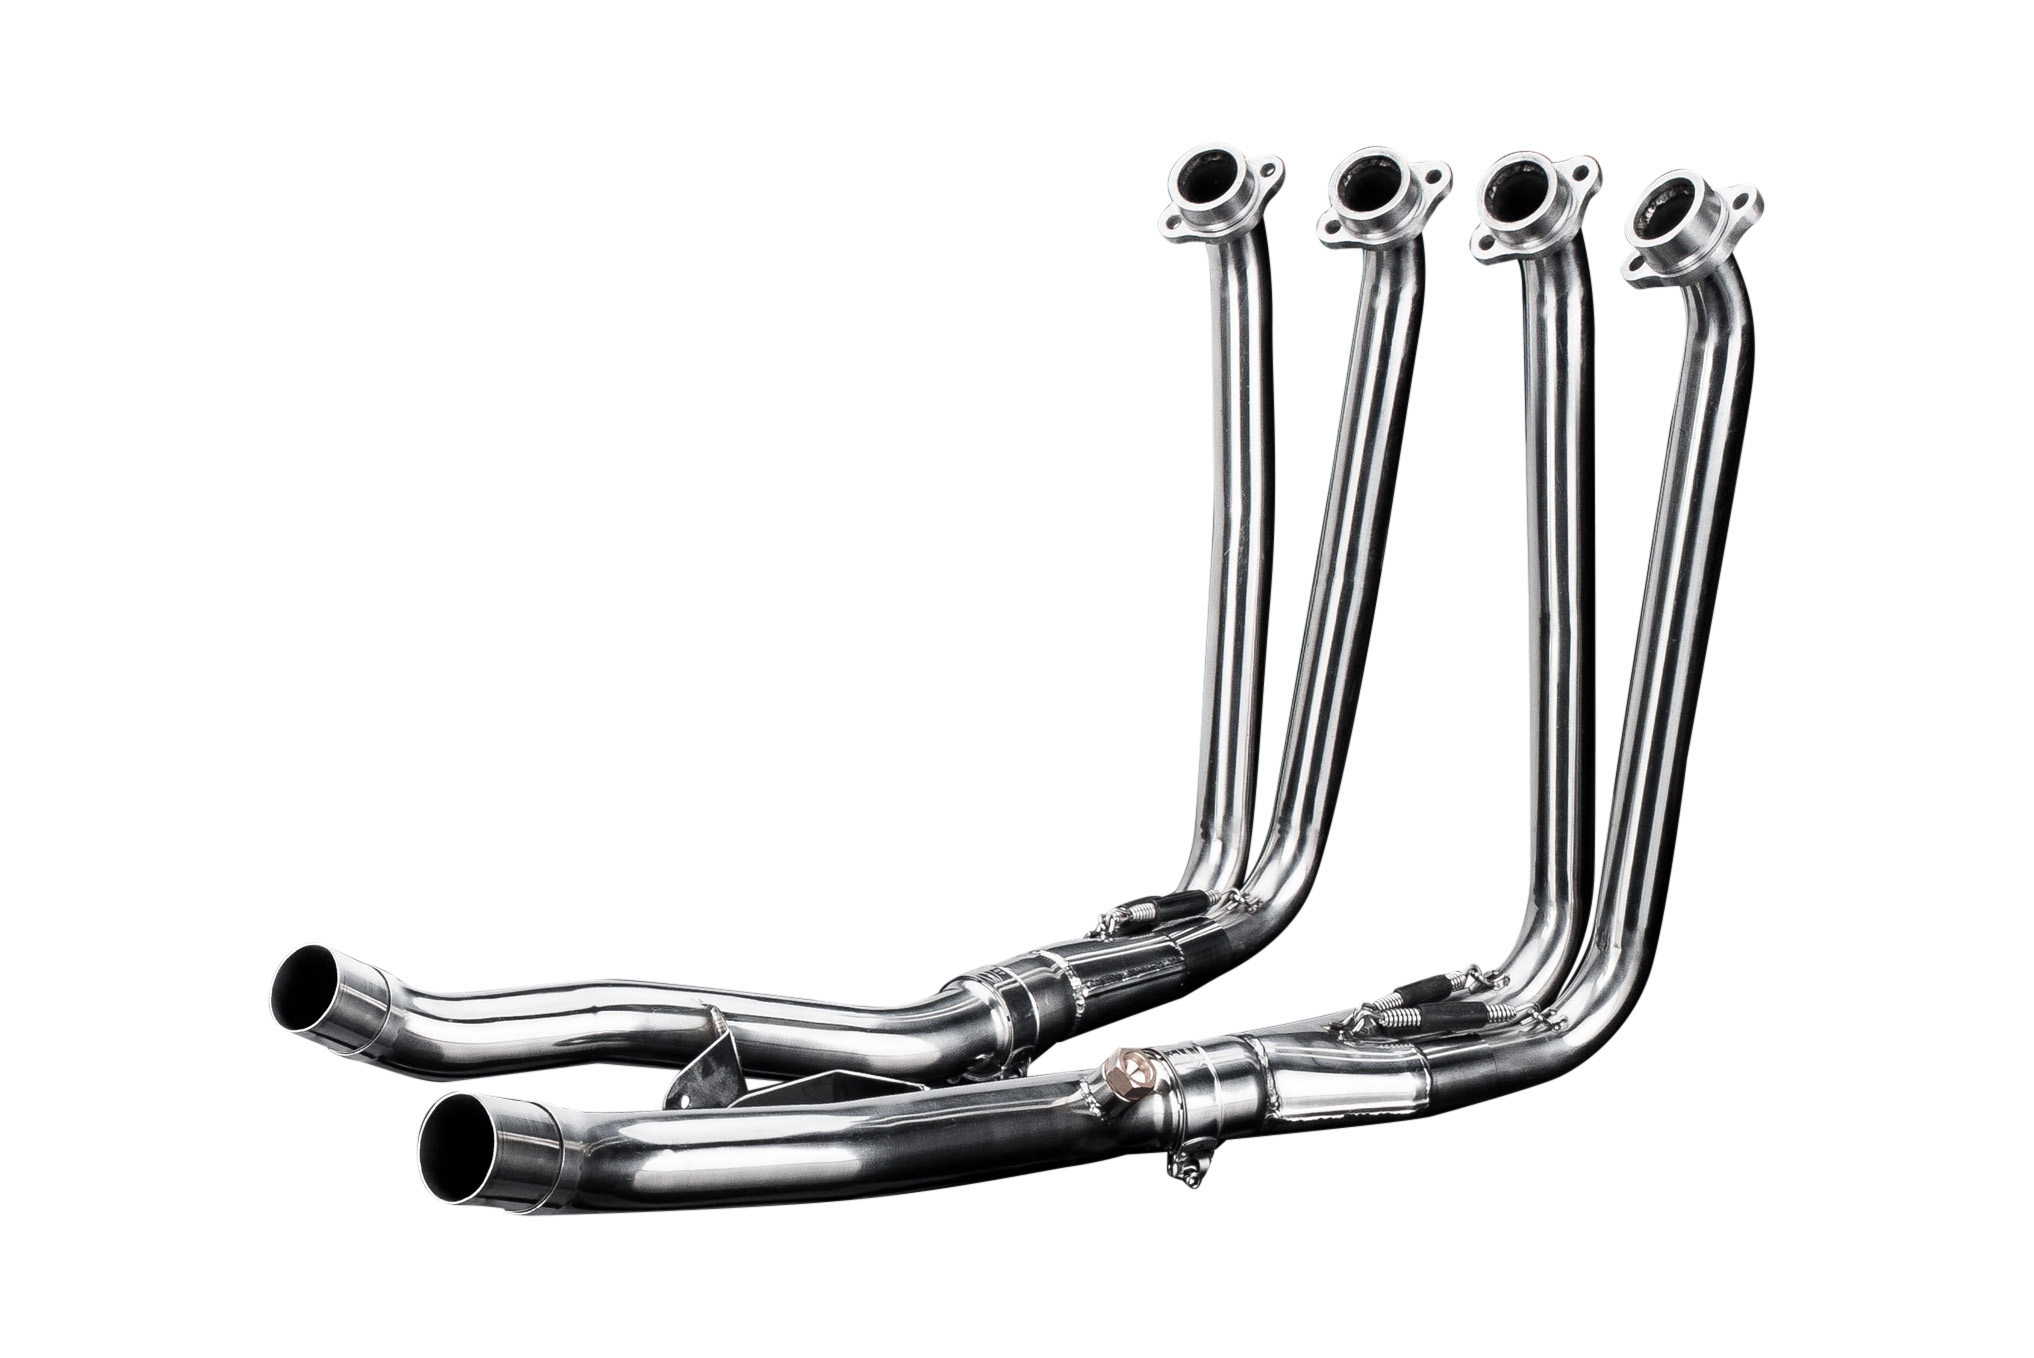 Yamaha Fjr 01 18 De Cat Downpipes Headers 4 Gt 2